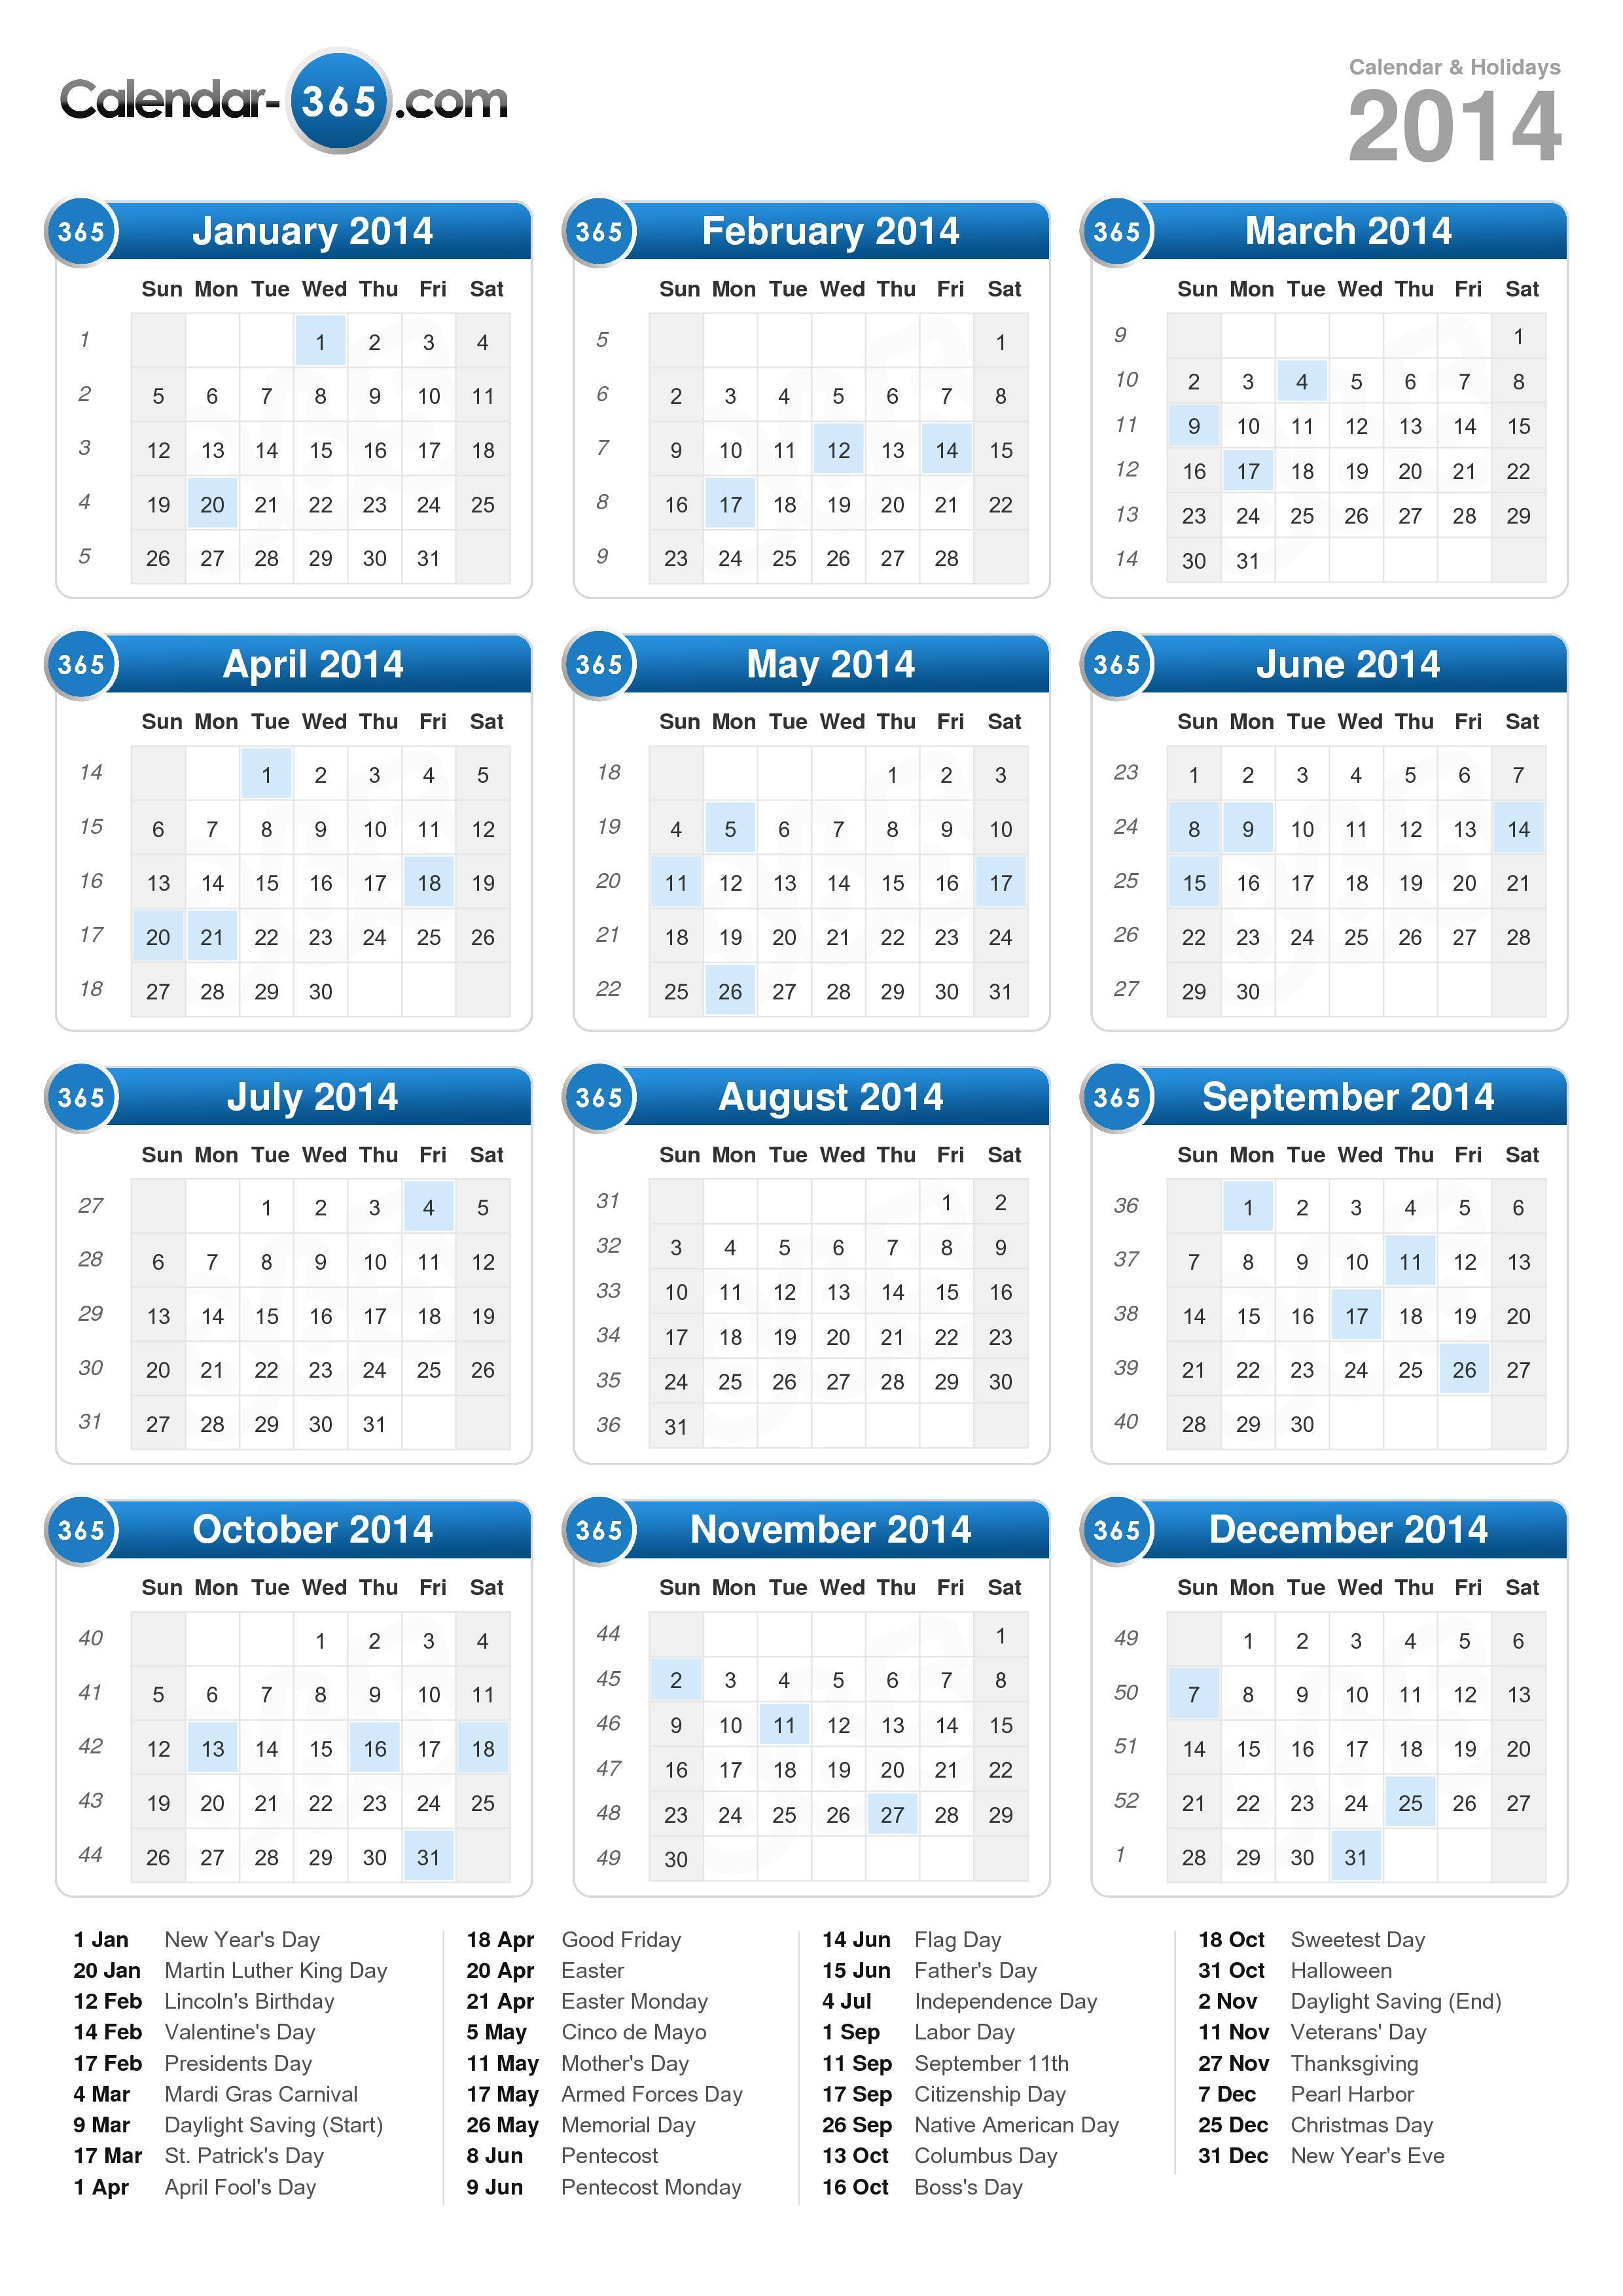 Download the 2014 Calendar with holidays . (Portrait format - 1 Page)